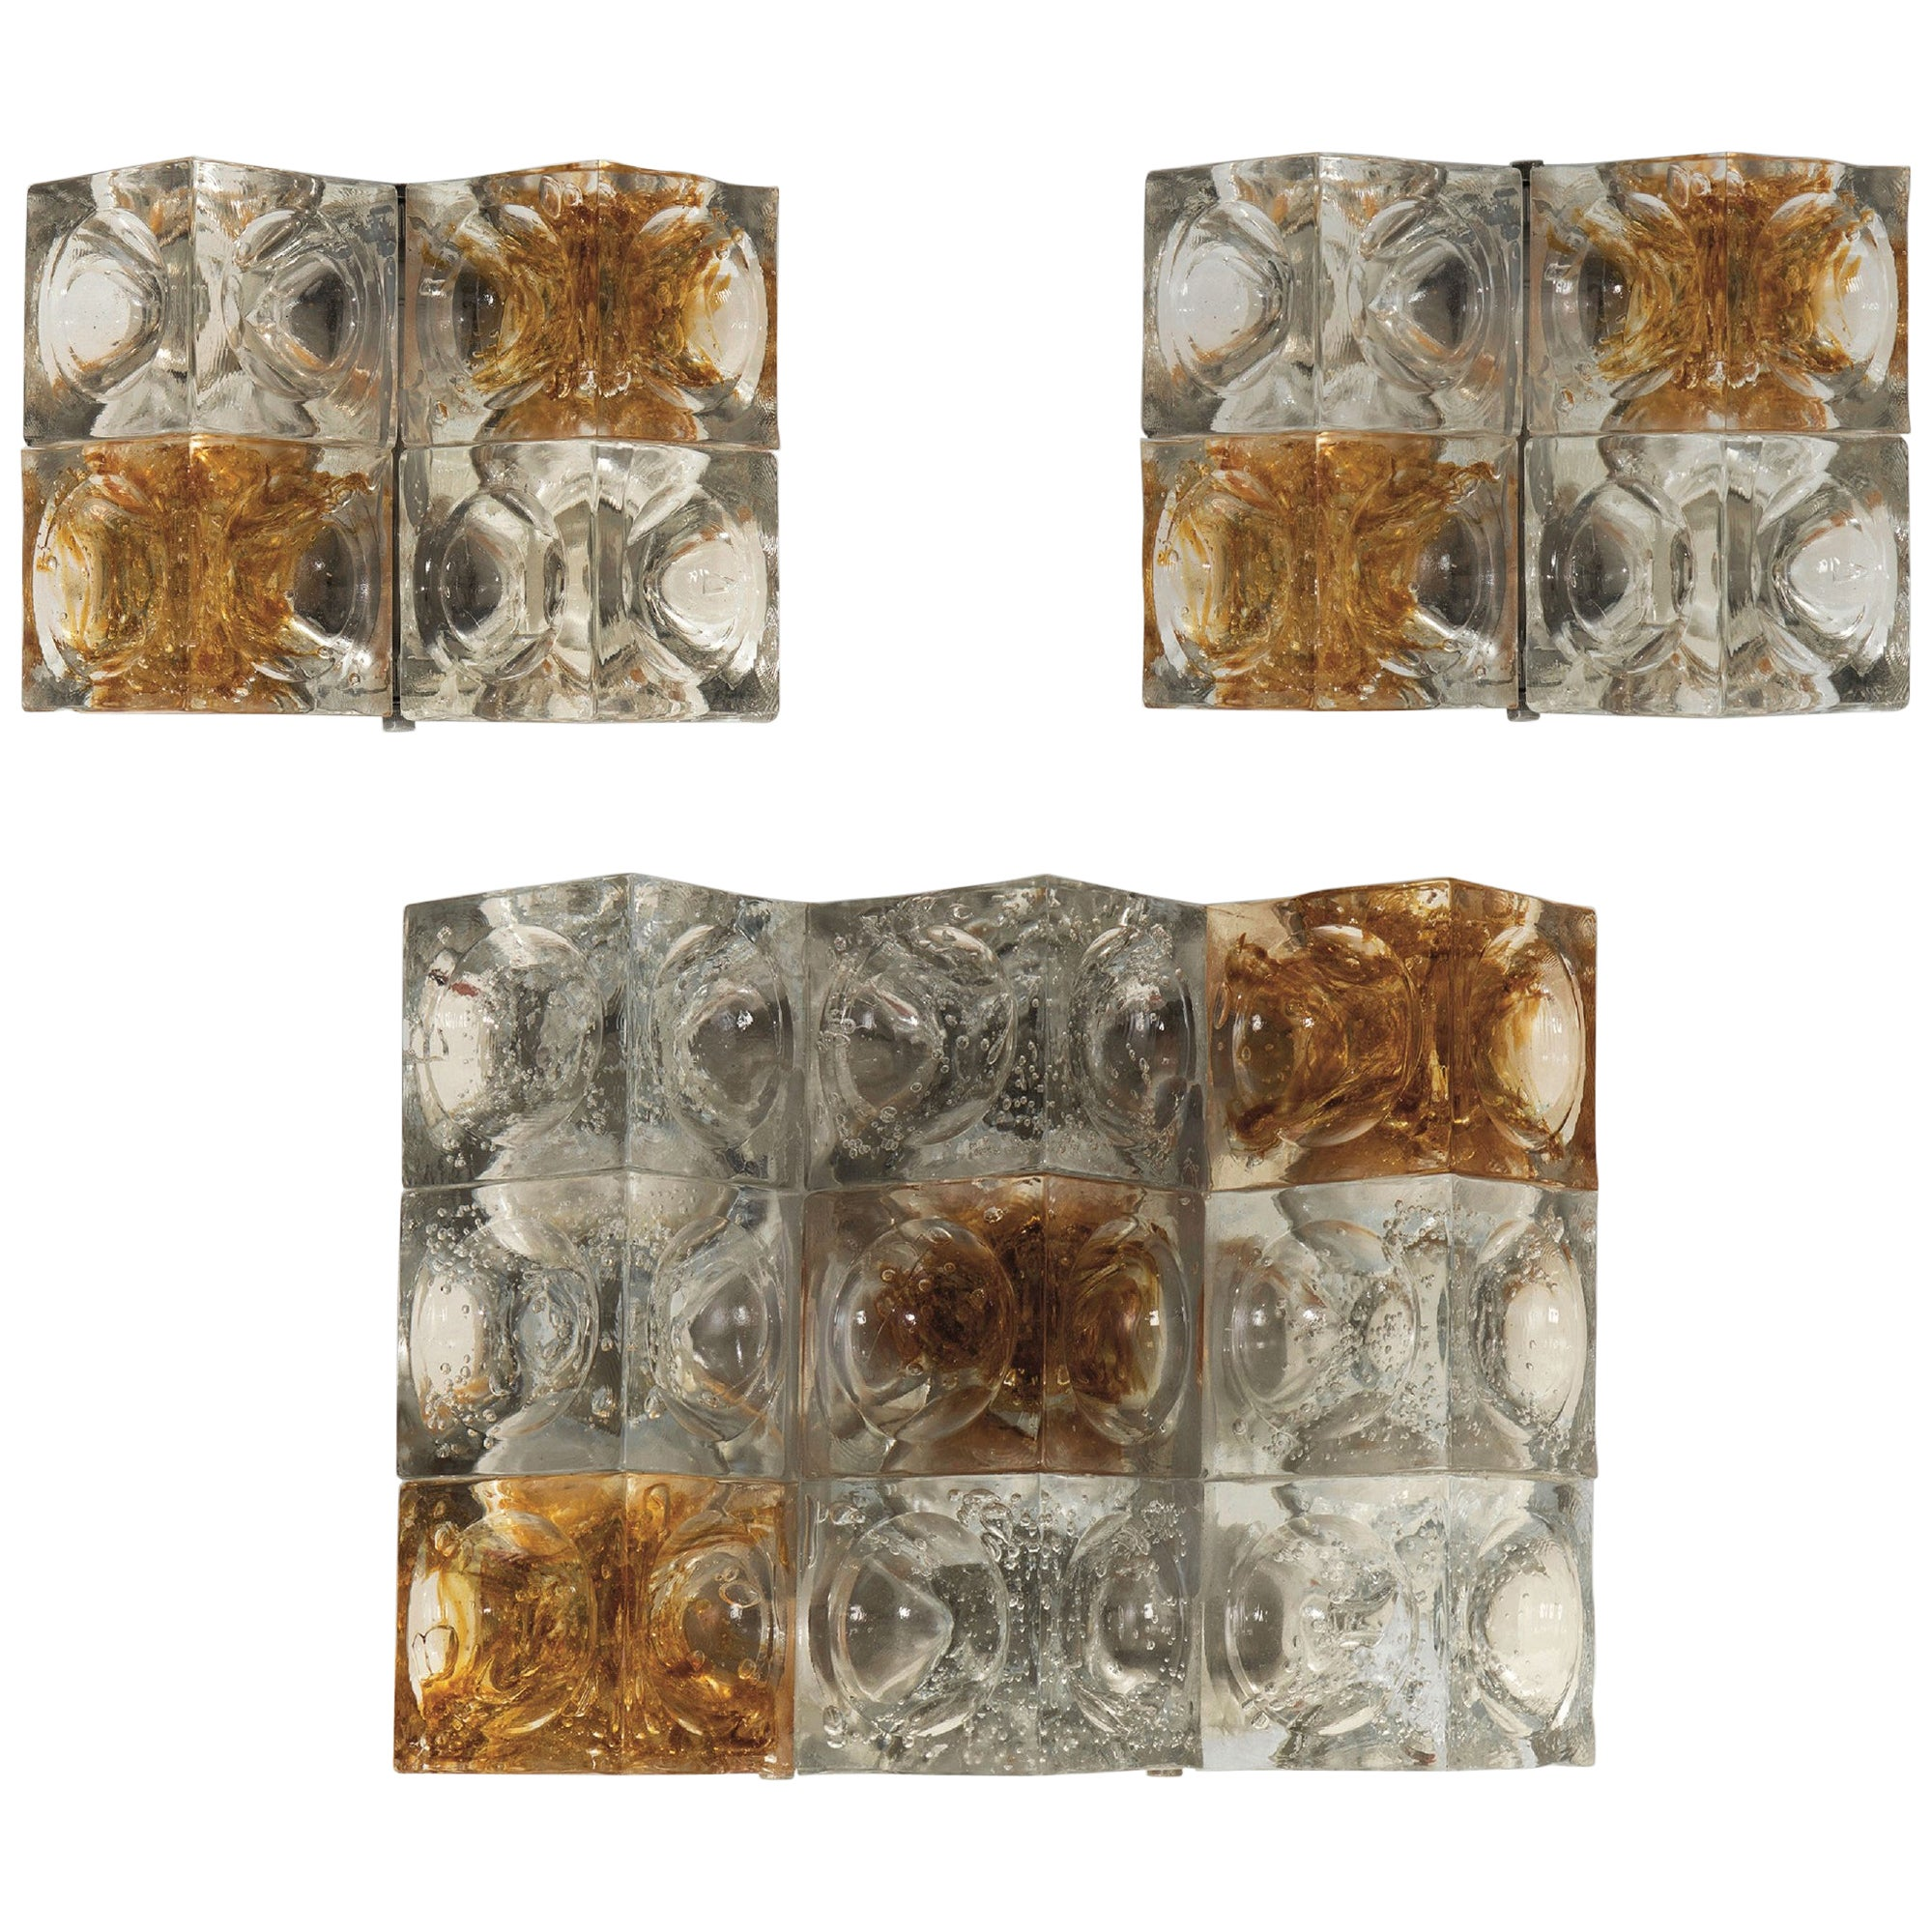 Albano Poli Set of Three Appliques in Glass for Poliarte, 1970